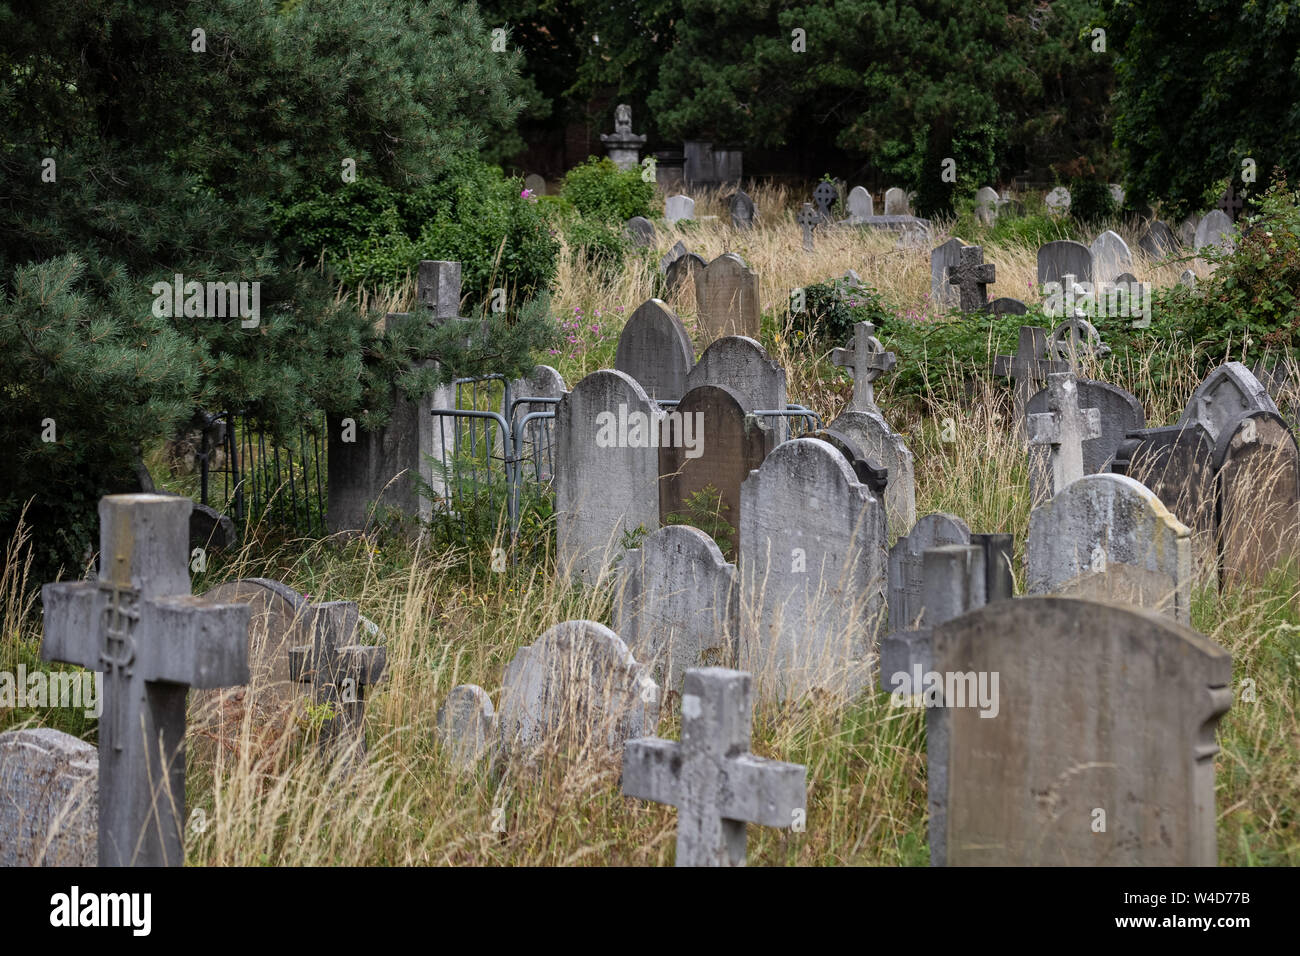 Brompton Cemetery Open Day. One of the 'Magnificent Seven' cemeteries in London, England, UK Stock Photo